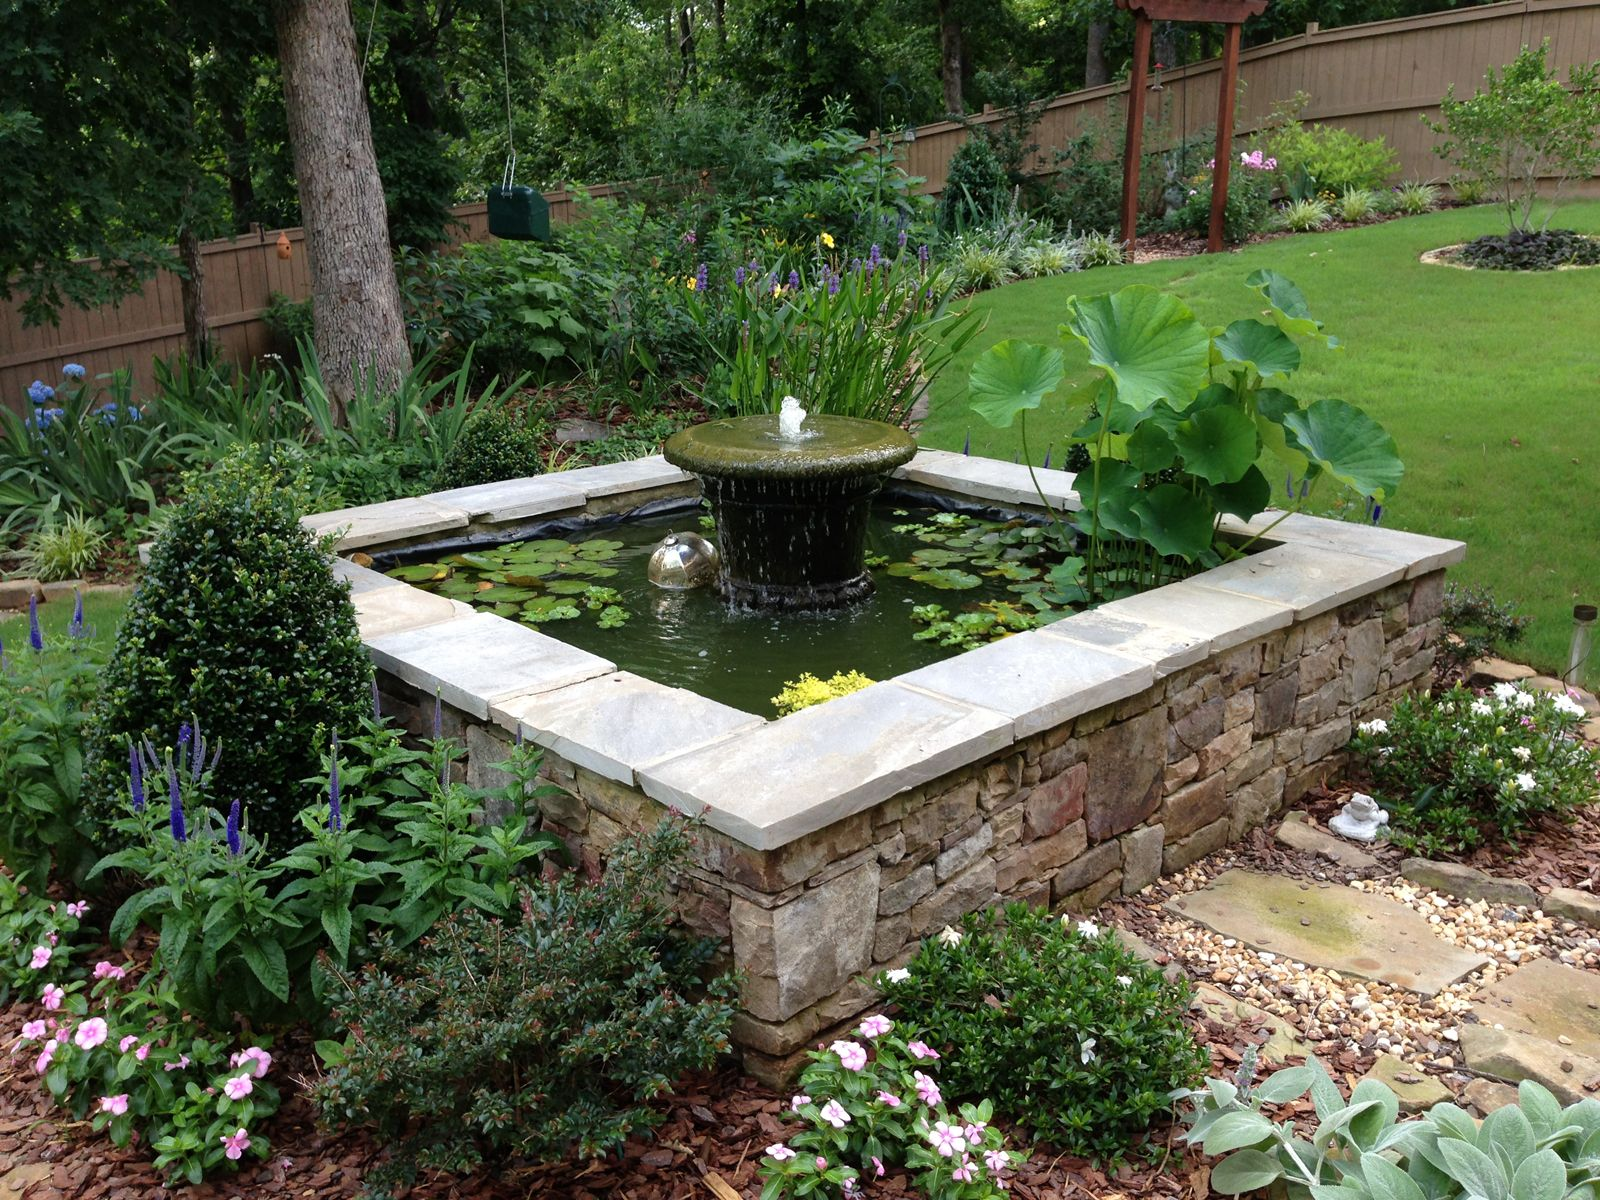 Square water pool carol bill 39 s garden in georgia for Fish pond fountain design